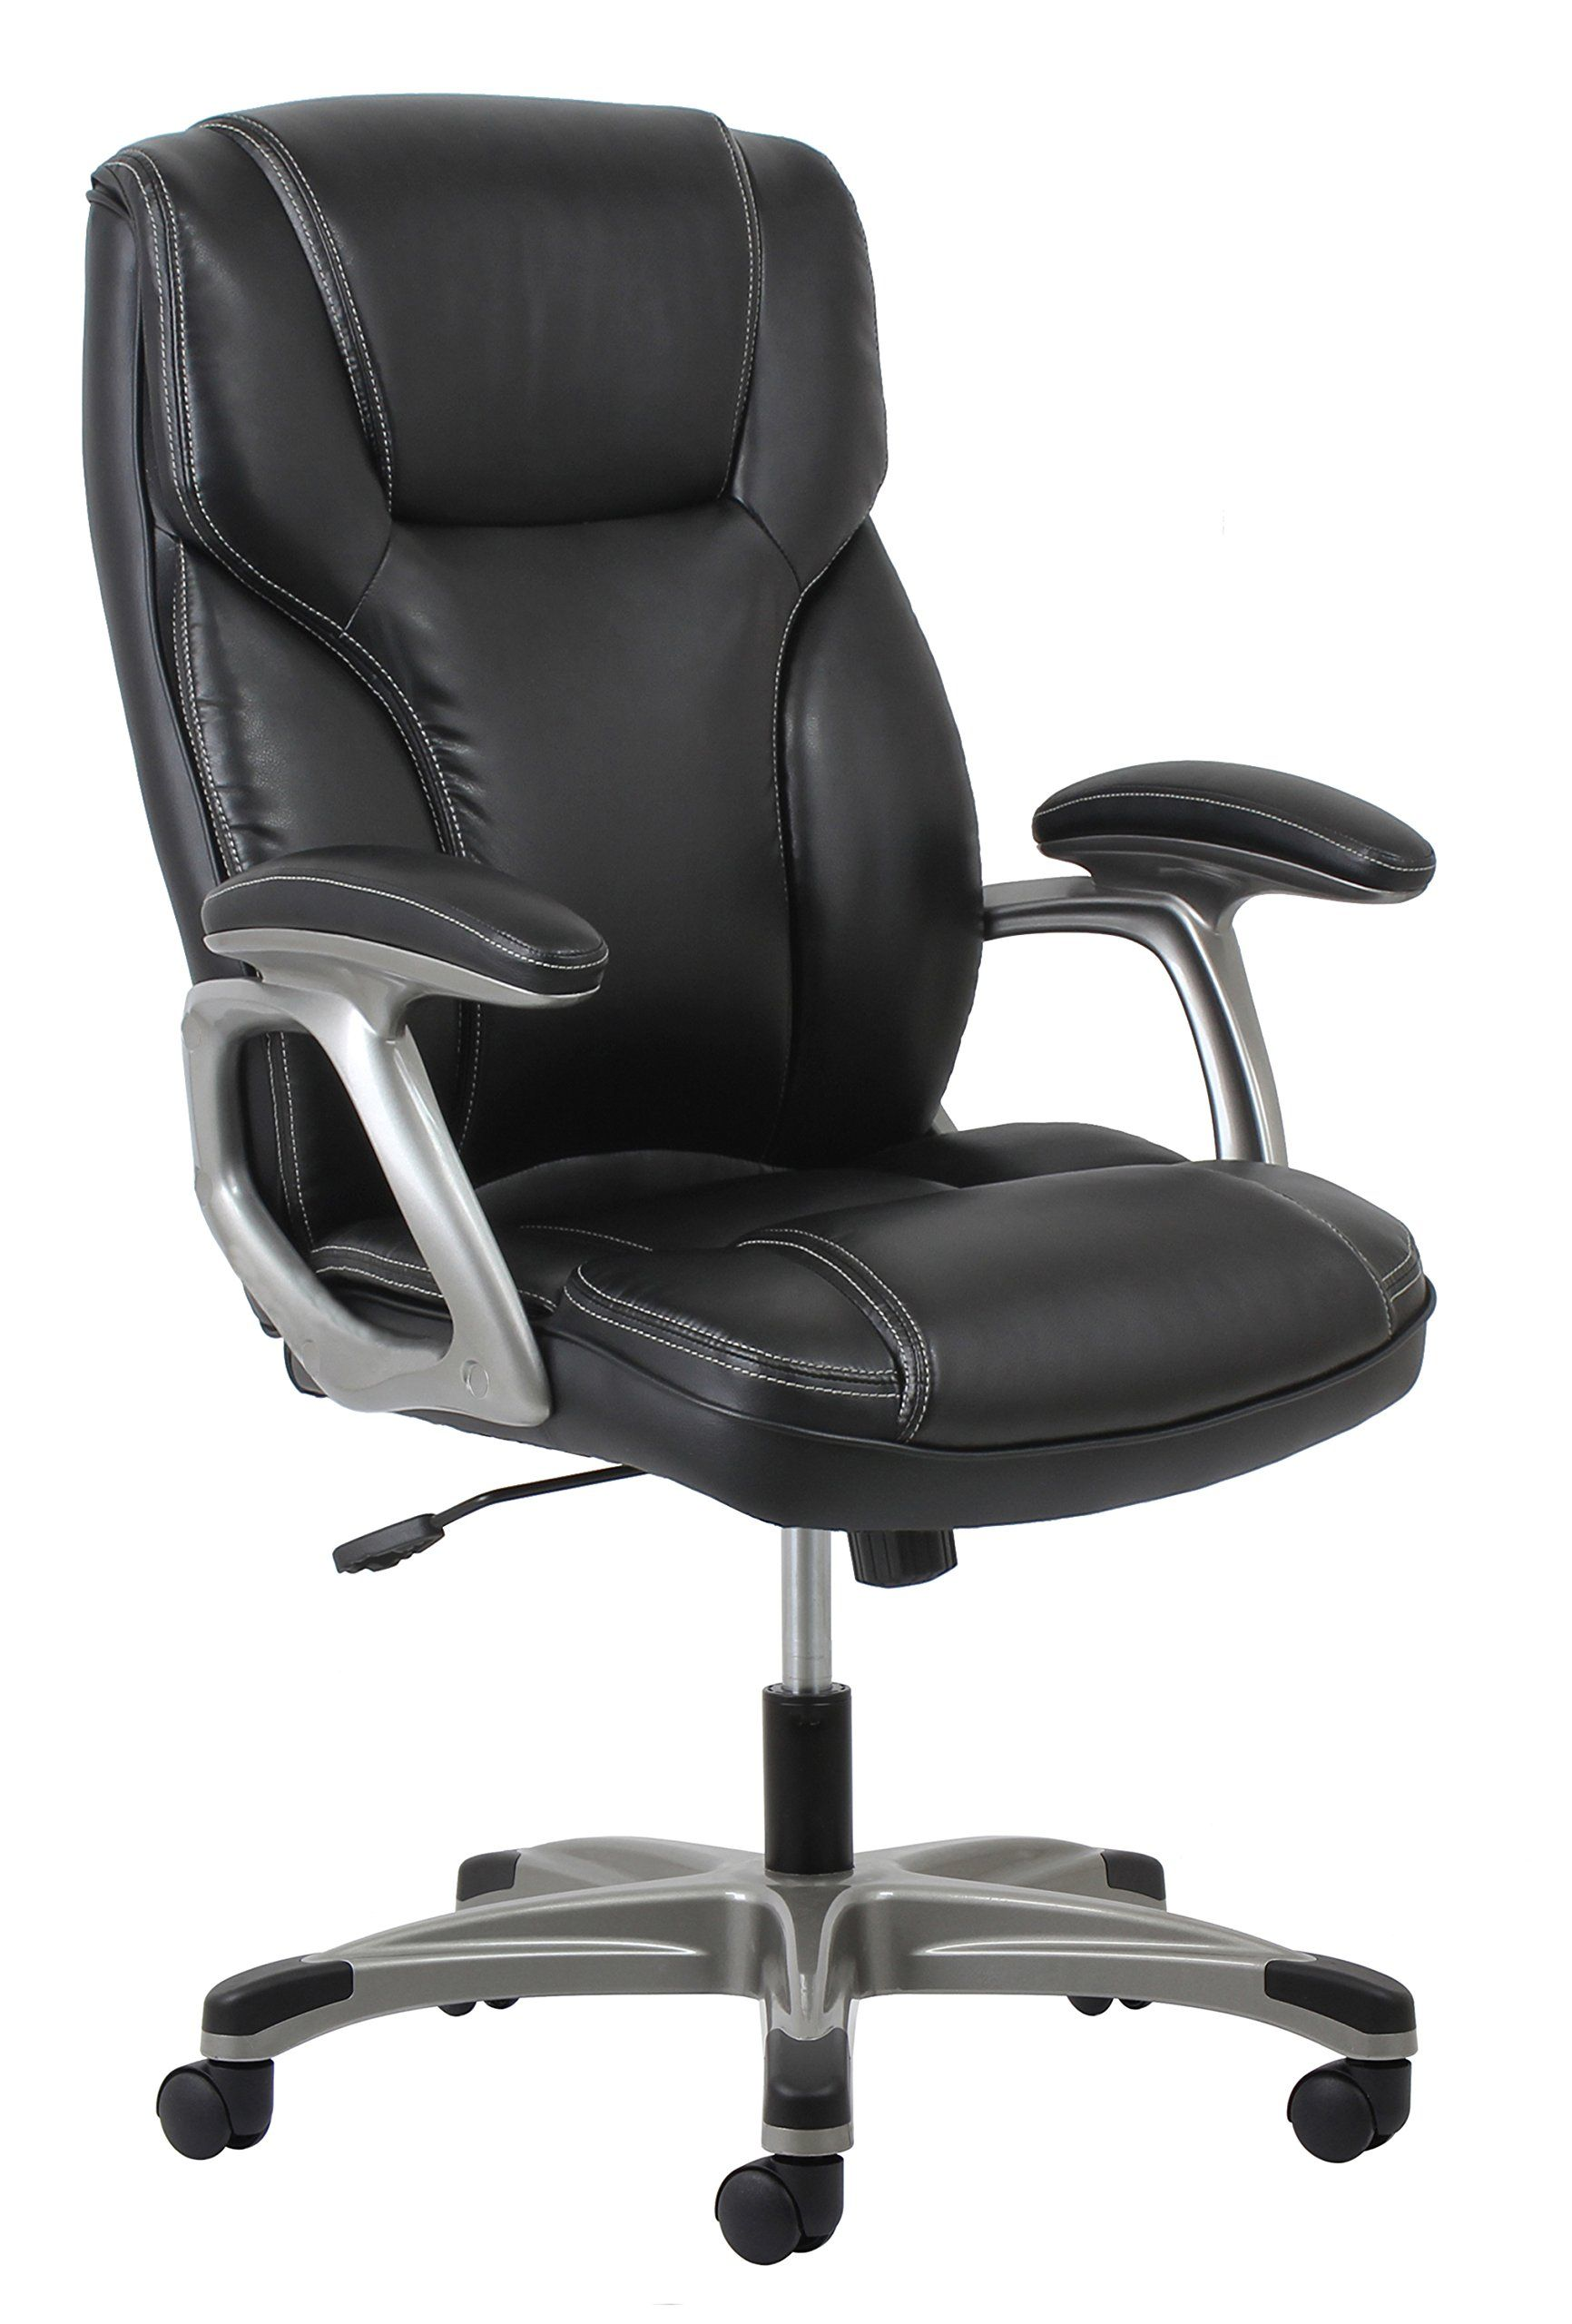 Essentials HighBack Leather Executive